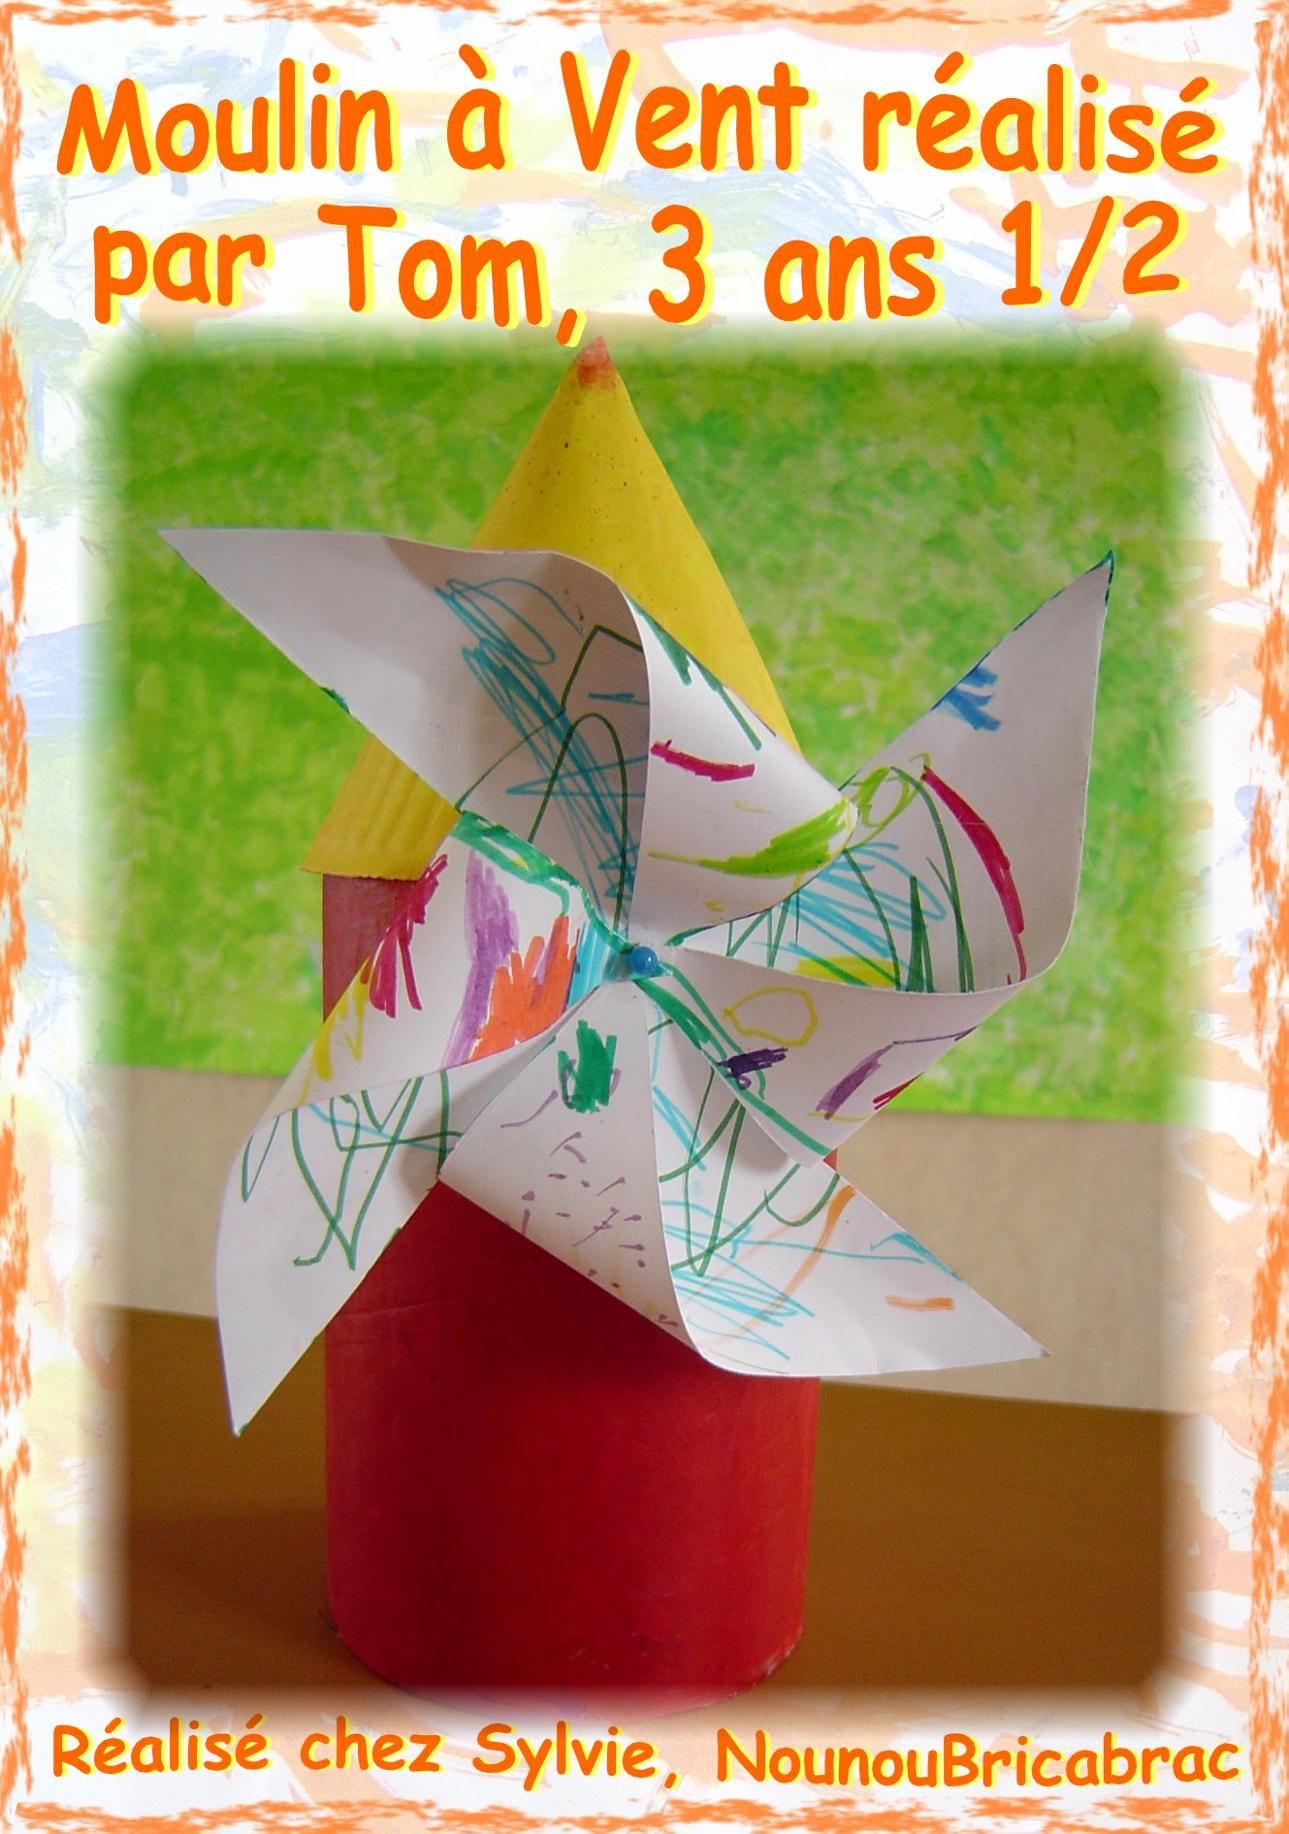 Moulin à Vent... de Tom, 3 ans 1/2